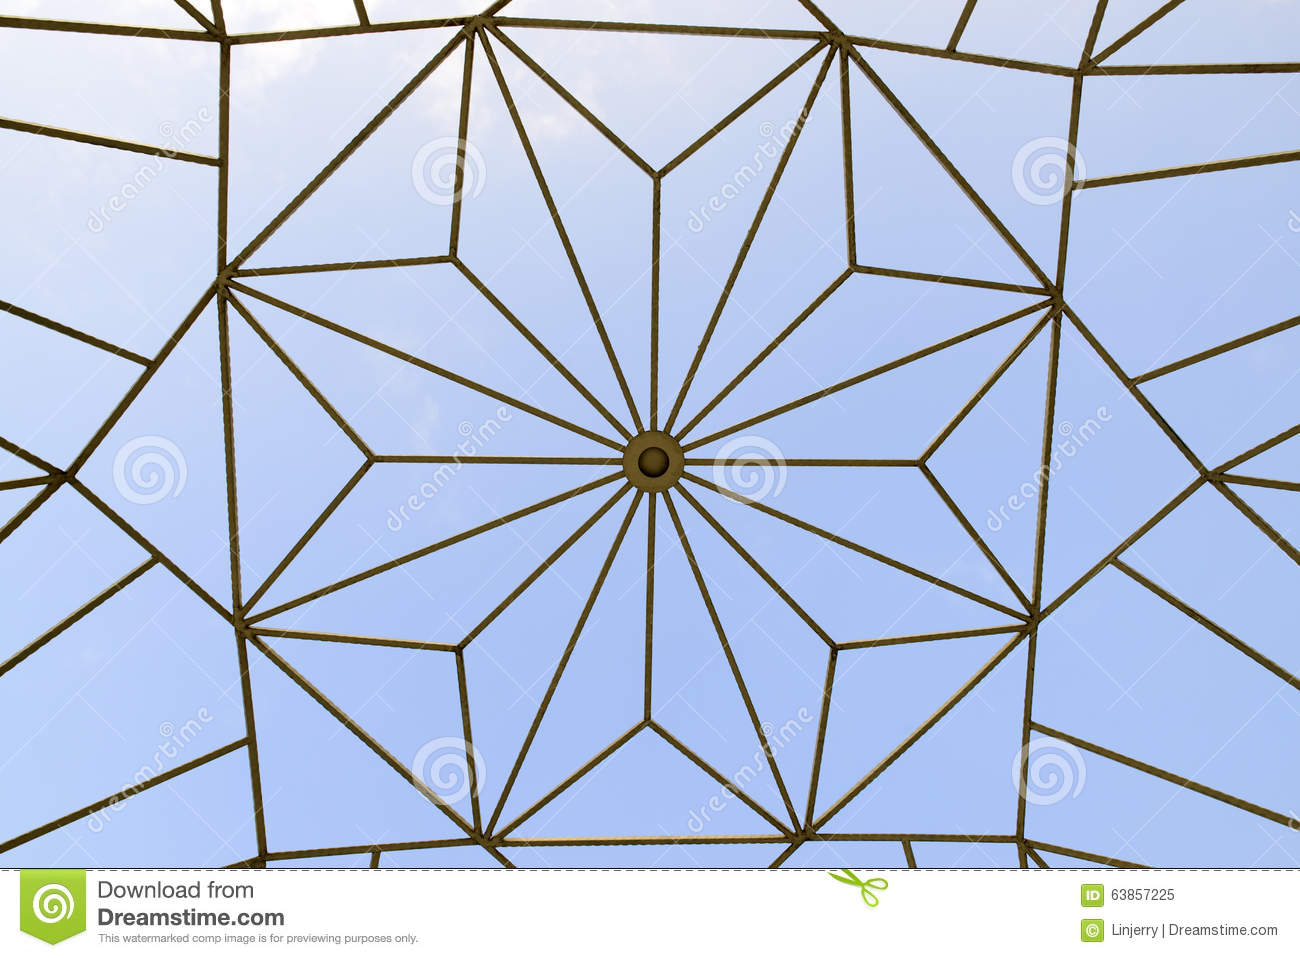 Texture Of Dome Roof. Stock Photo.